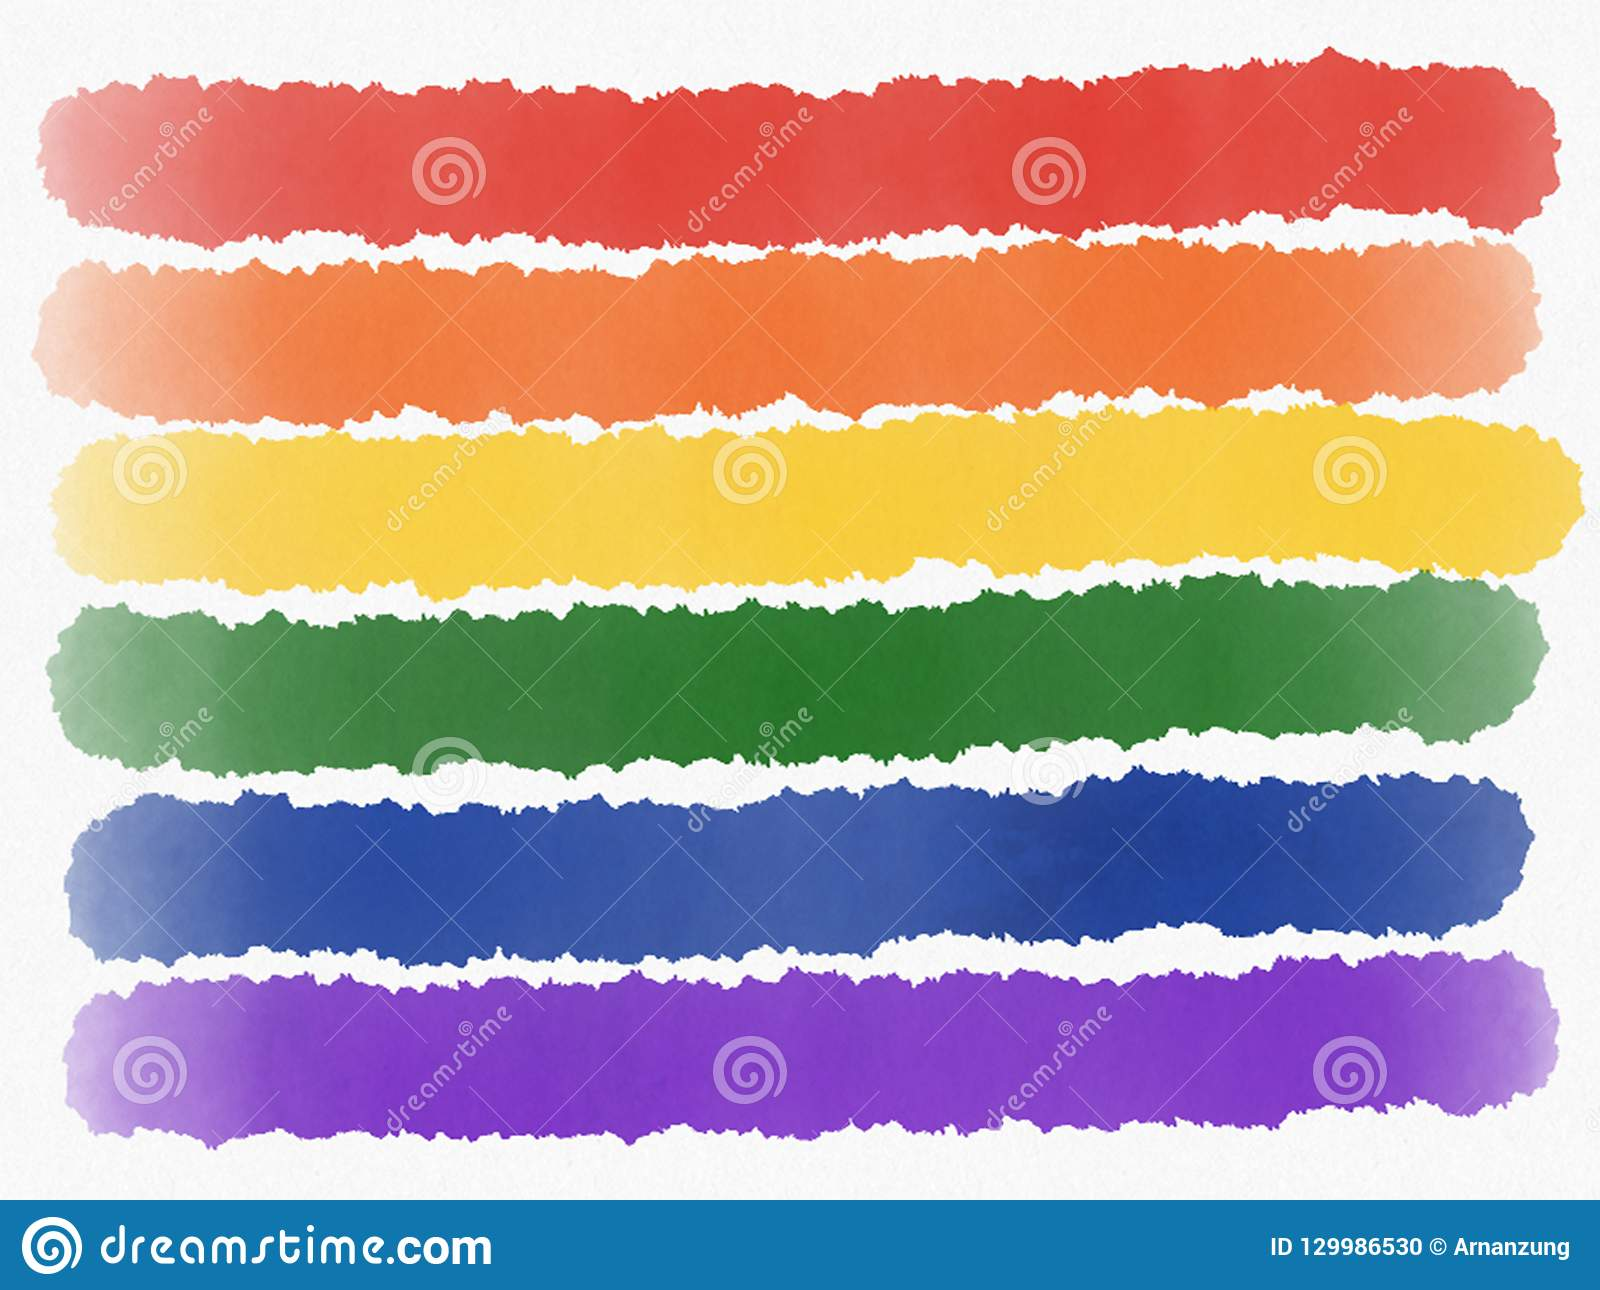 Abstract rainbow painting isolated. LGBT pride flag on white background. Watercolor illustration.